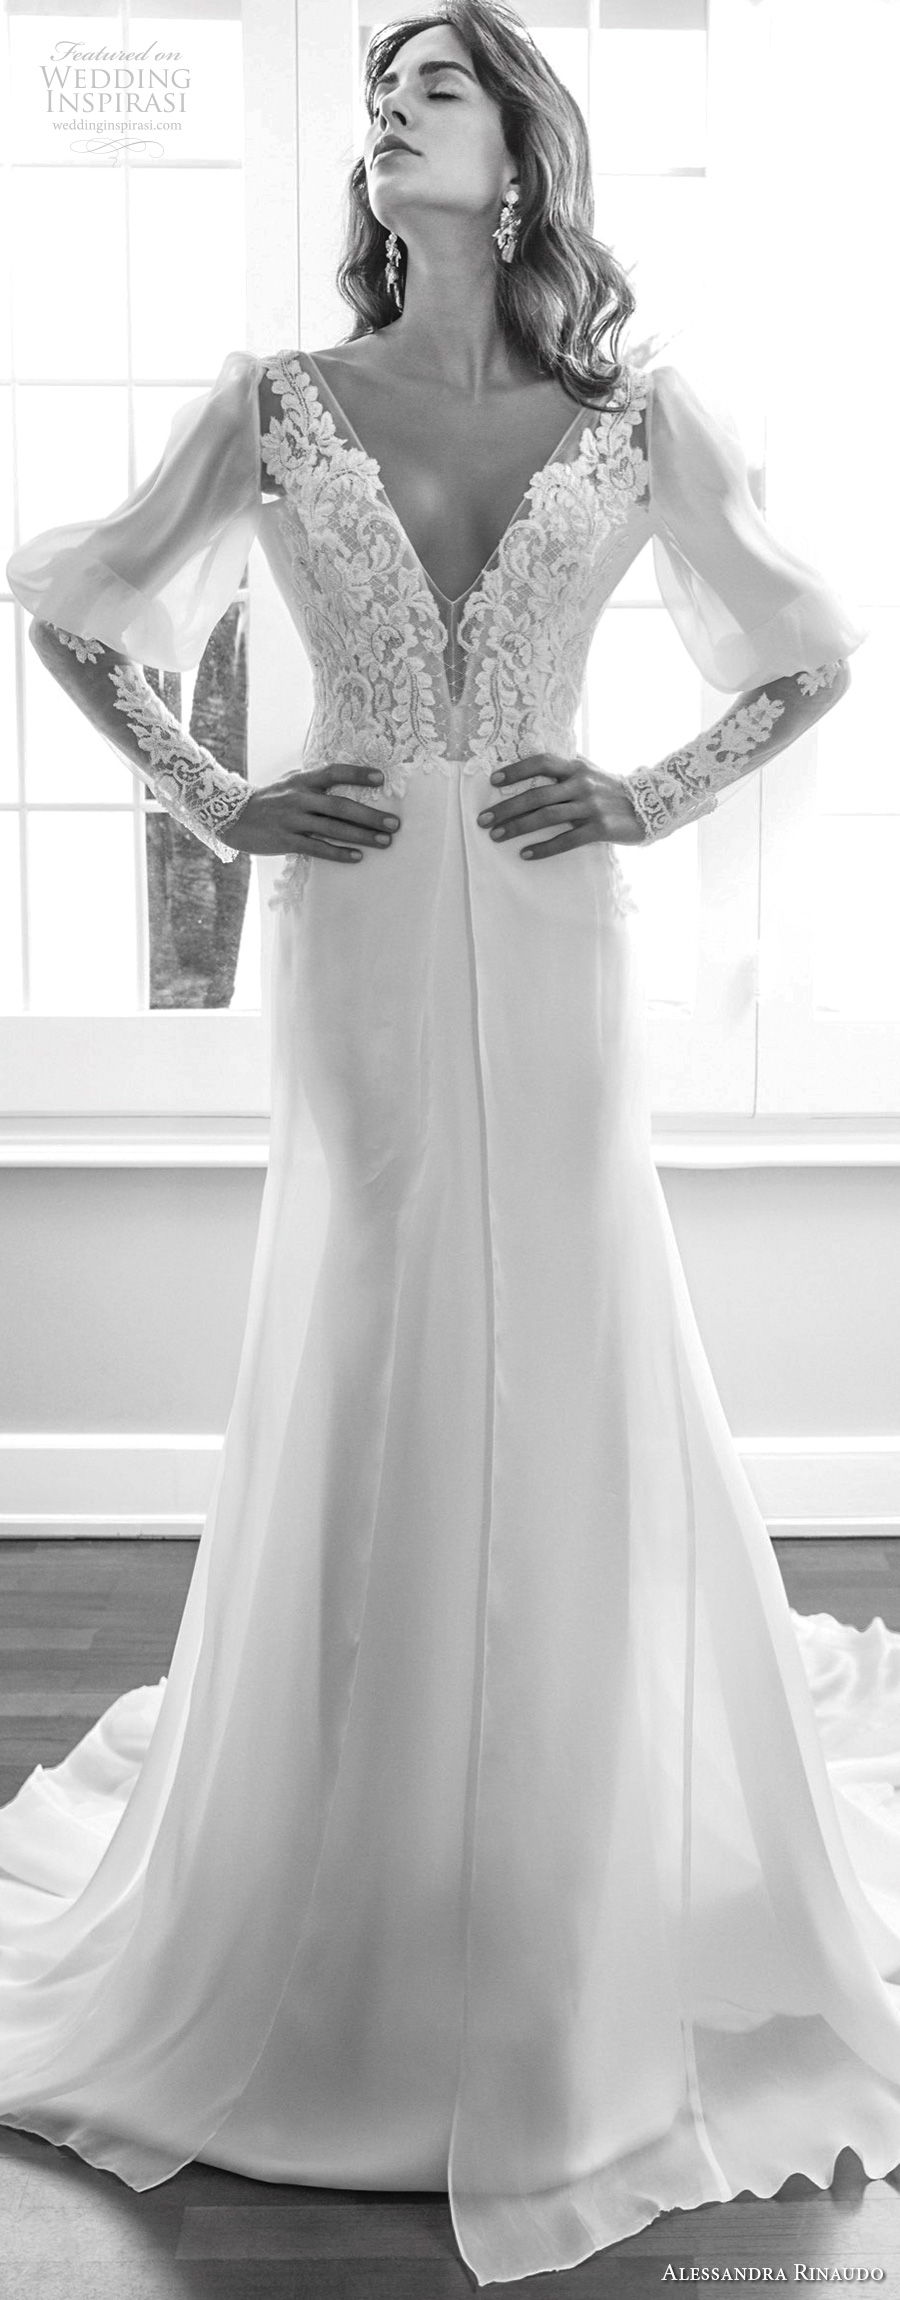 alessandra rinaudo 2018 bridal long mutton sleeves deep v neck heavily embellished elegant vintage soft a line wedding dress low open back chapel train (07) mv